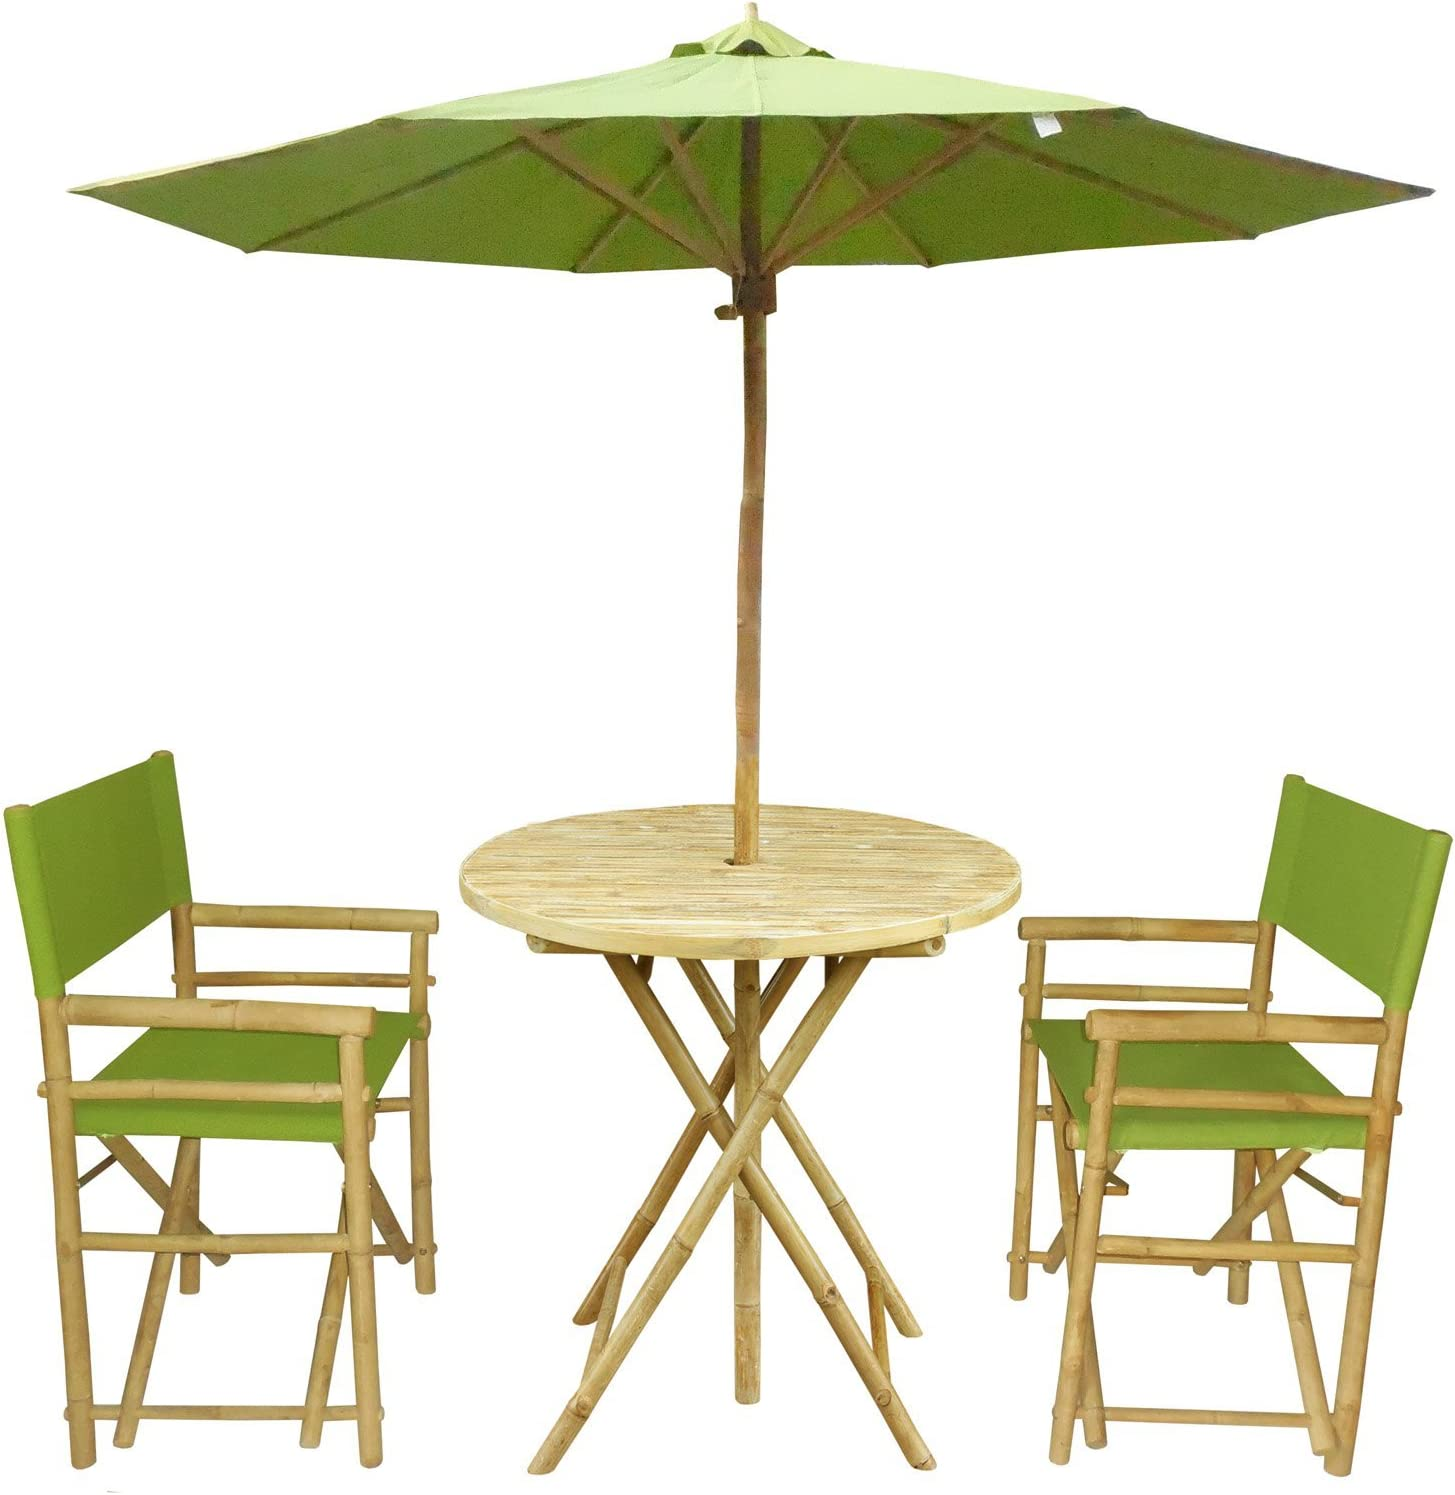 Zew Handmade 4-Piece Bamboo Folding Bistro Set with Round Table, 2 Director Chairs and Umbrella, Celadon